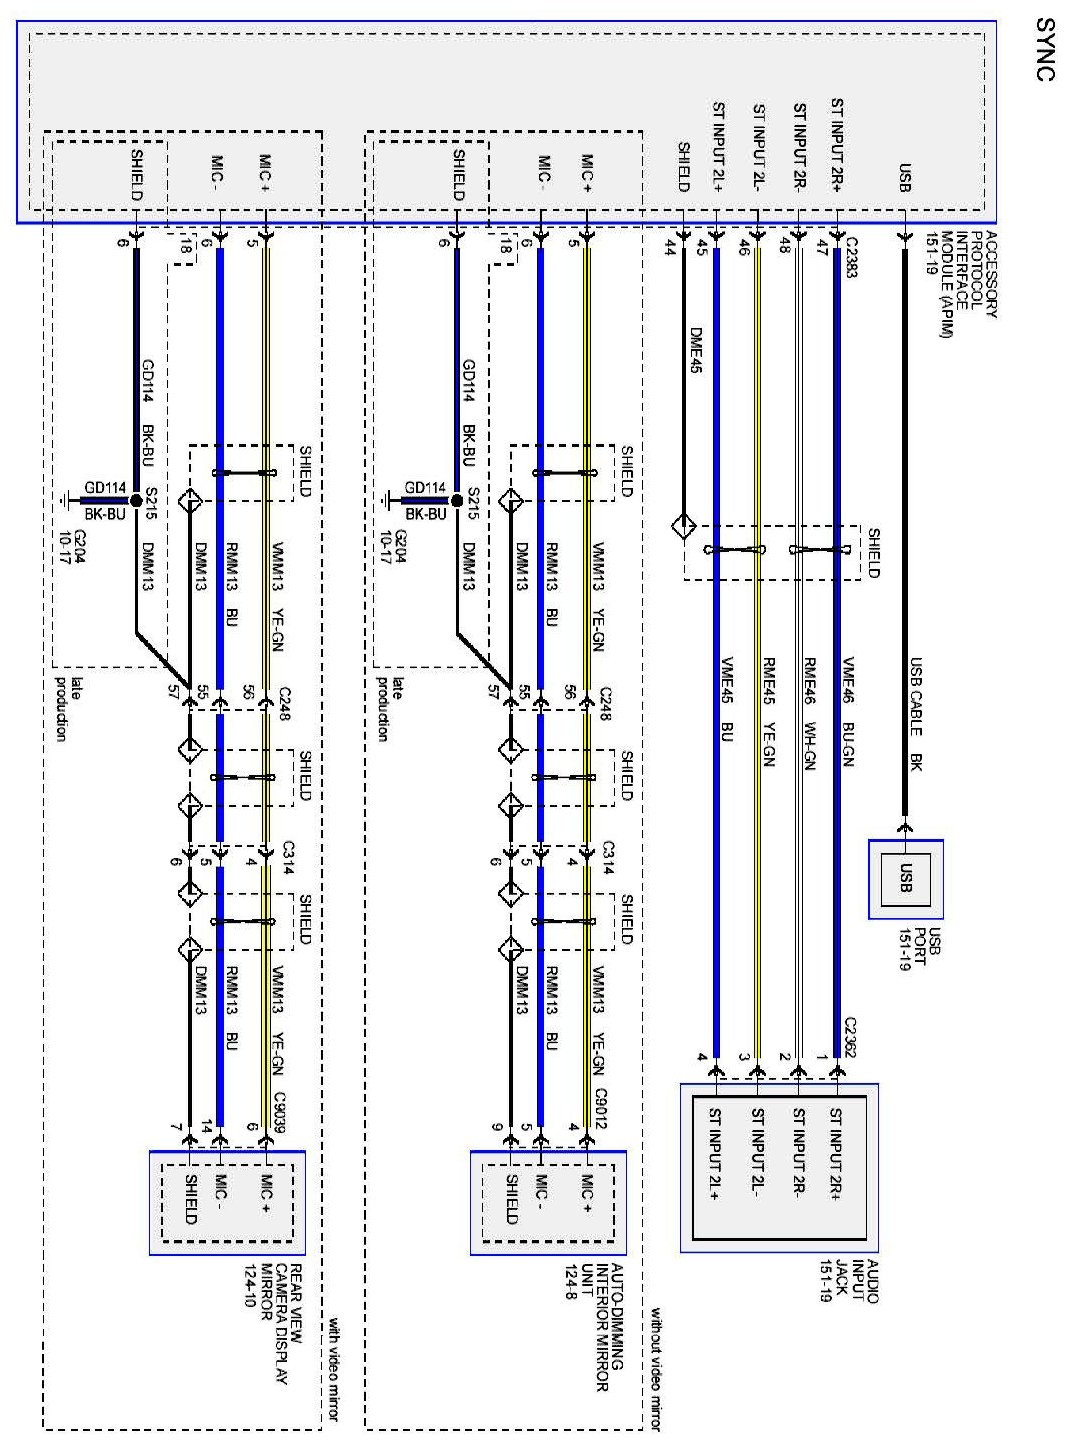 ford falcon stereo wiring diagram 3 wire trailer light 2006 f250 diagrams electrical systems library